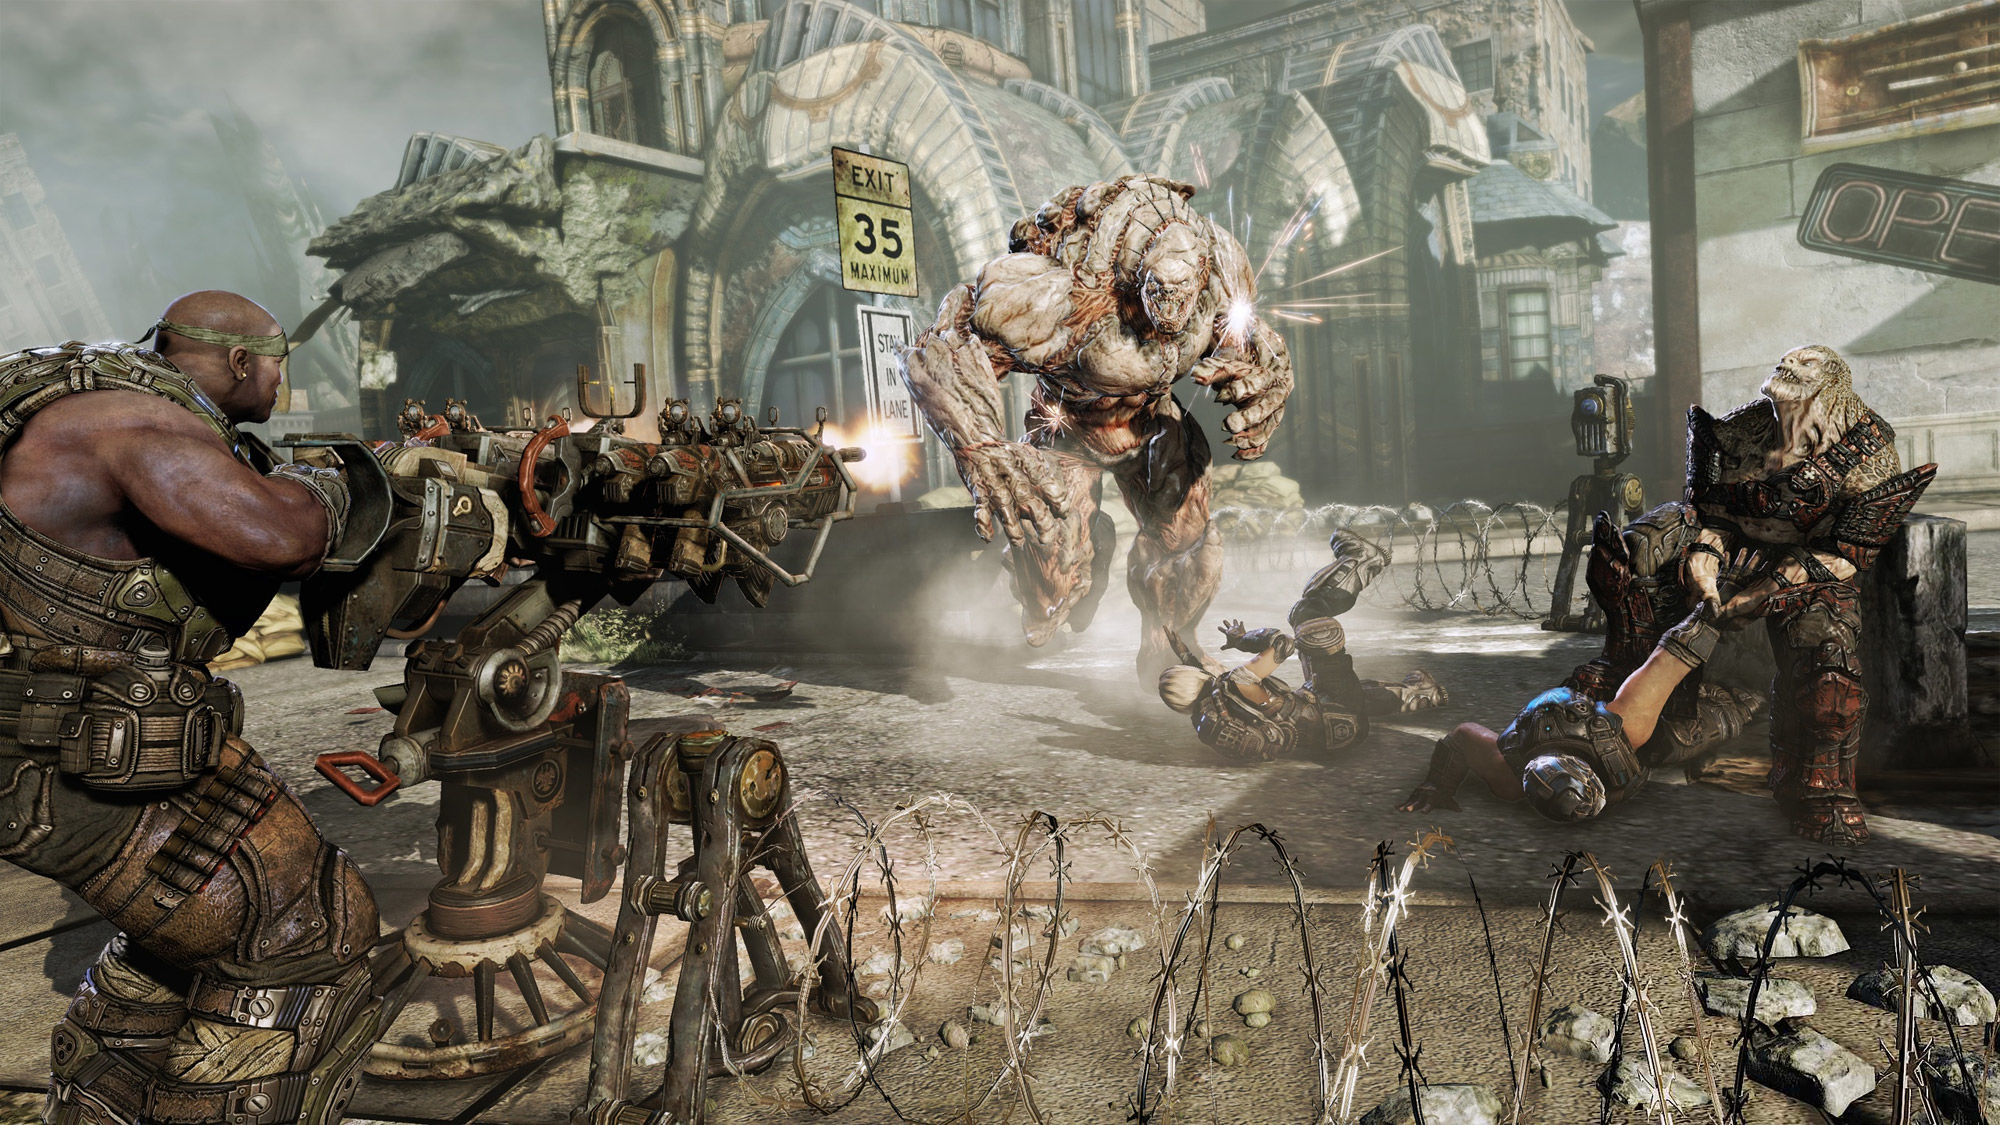 drone star wars with Gears Of War 3 Review Focused Narrative And Tremendous Gameplay on Monster Man Beh together with Gears Of War 3 Review Focused Narrative And Tremendous Gameplay together with Viewtopic likewise Disney Is About To Pit Its Biggest Resort Against Its Own Worst Performing Resort besides Power Armor 473064487.